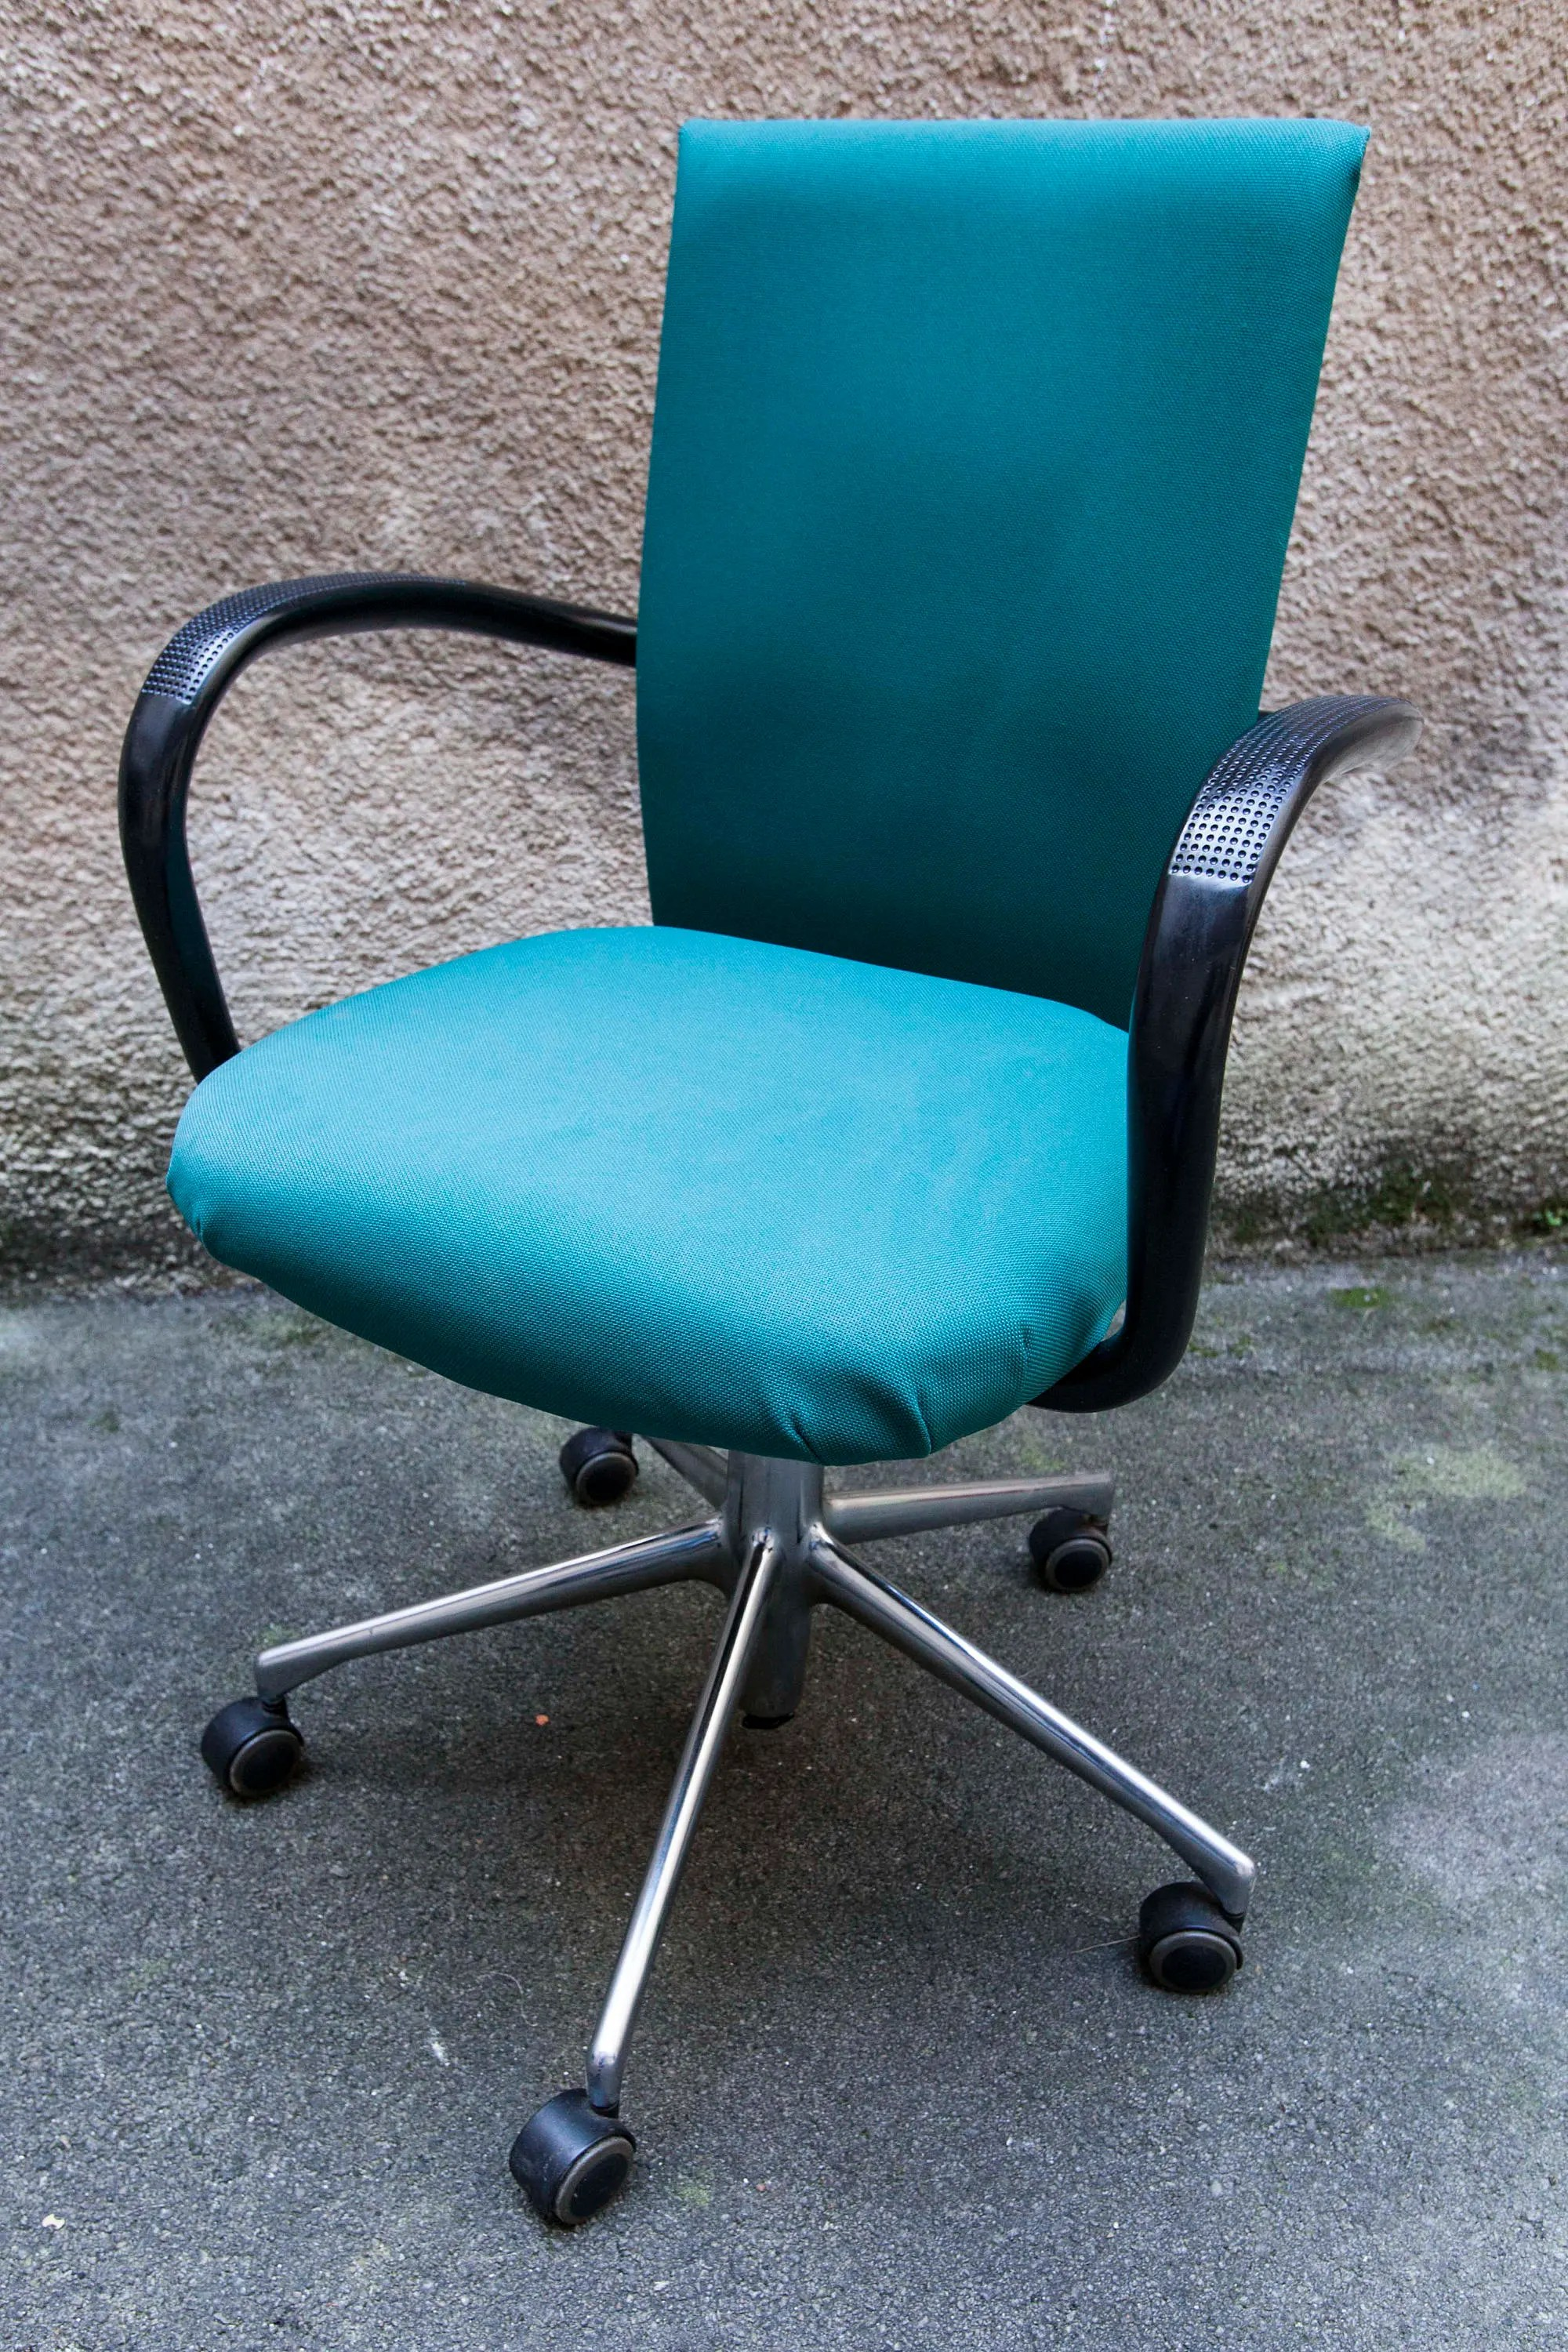 Vitra Office Chair Office Chair Vitra Design Citterio